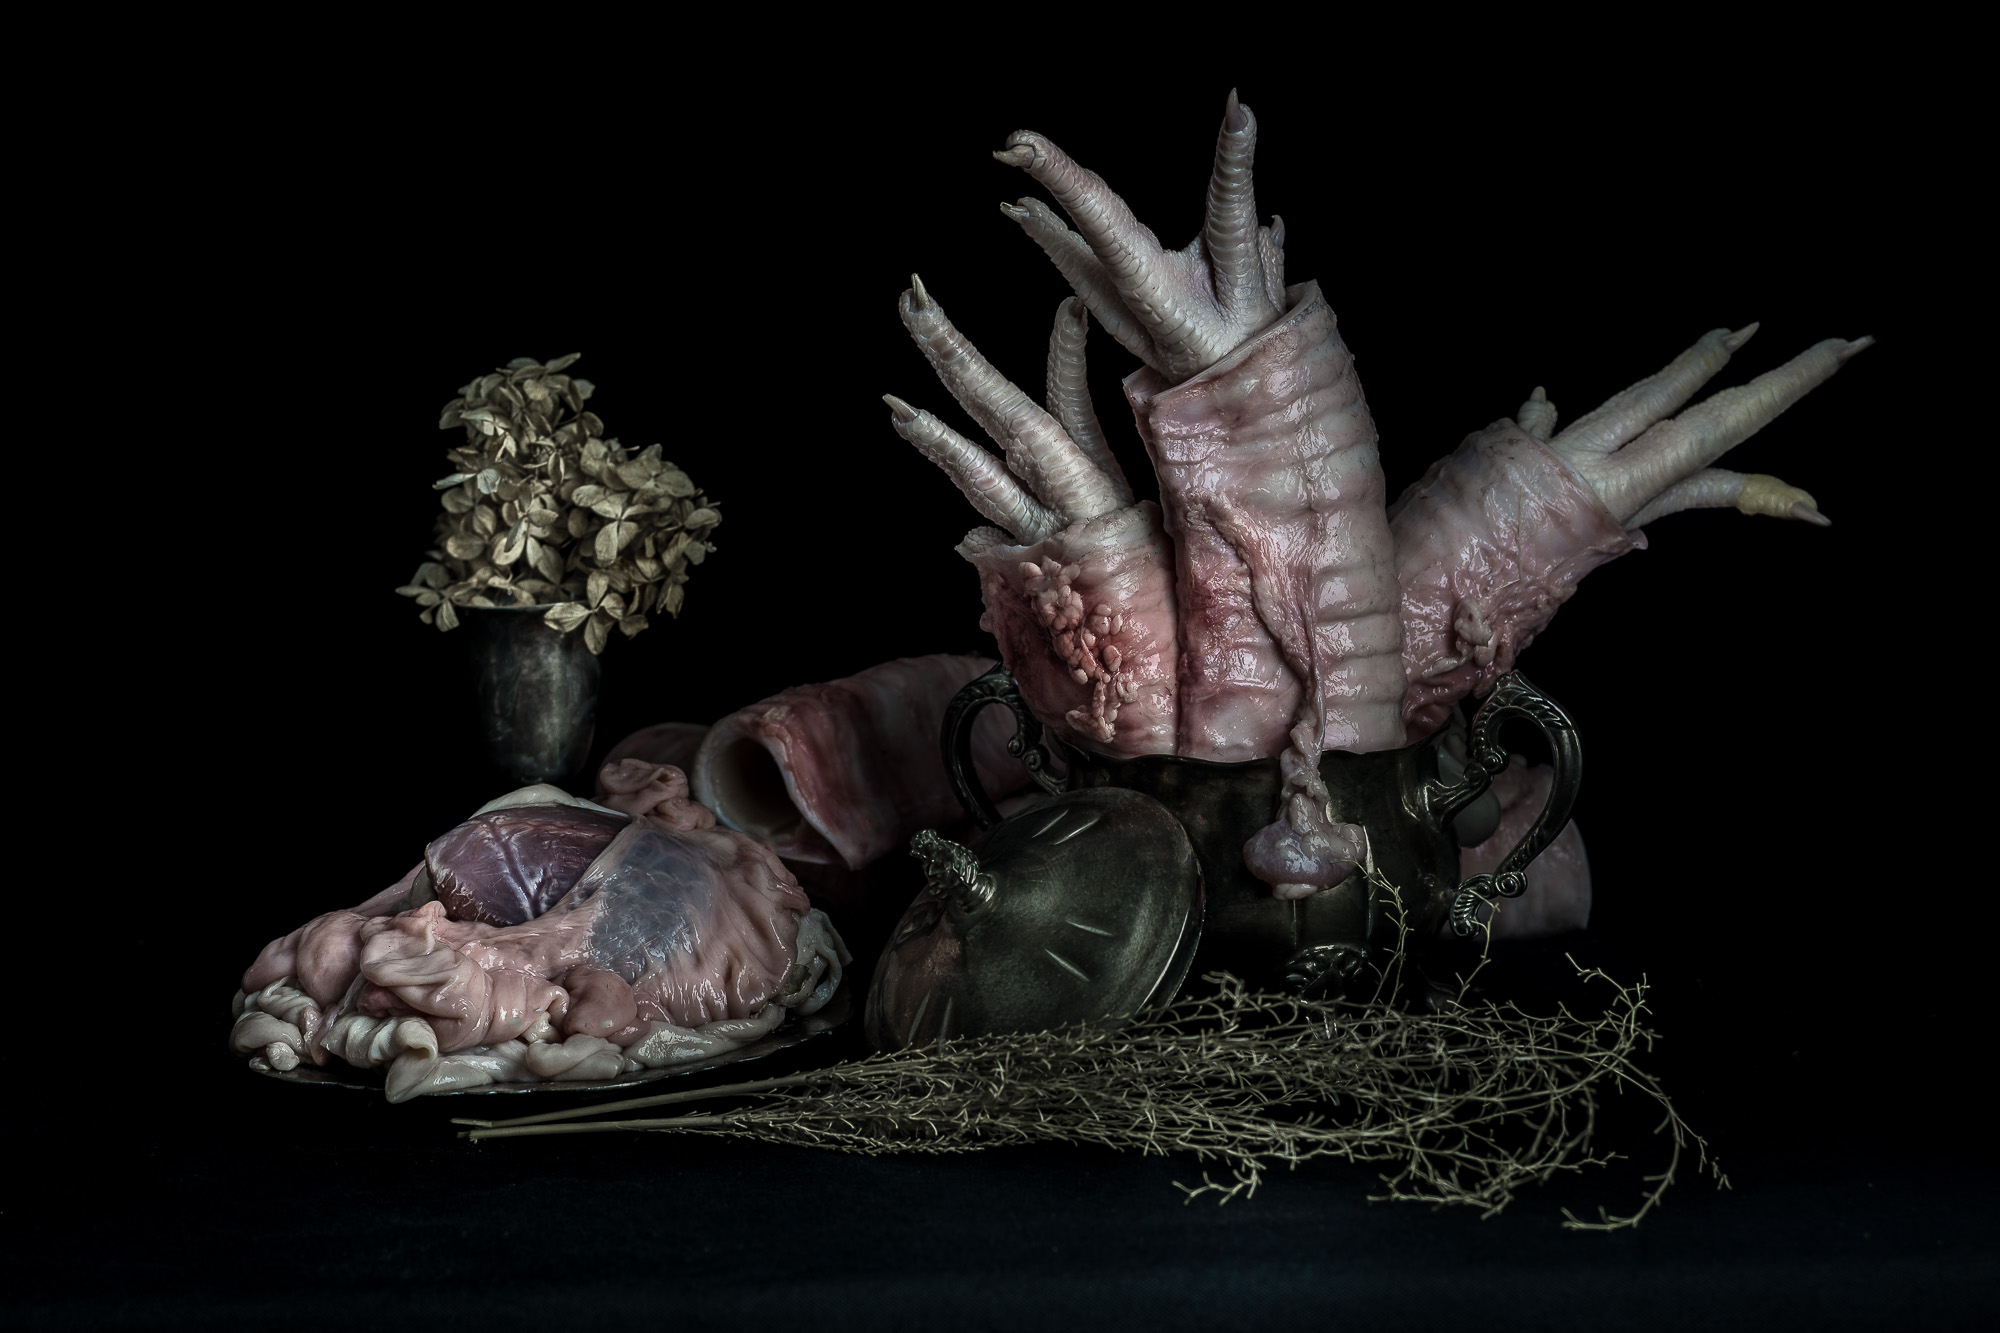 Floral Arrangment with Chicken Feet, Cow Trachea, and Pig Intestines